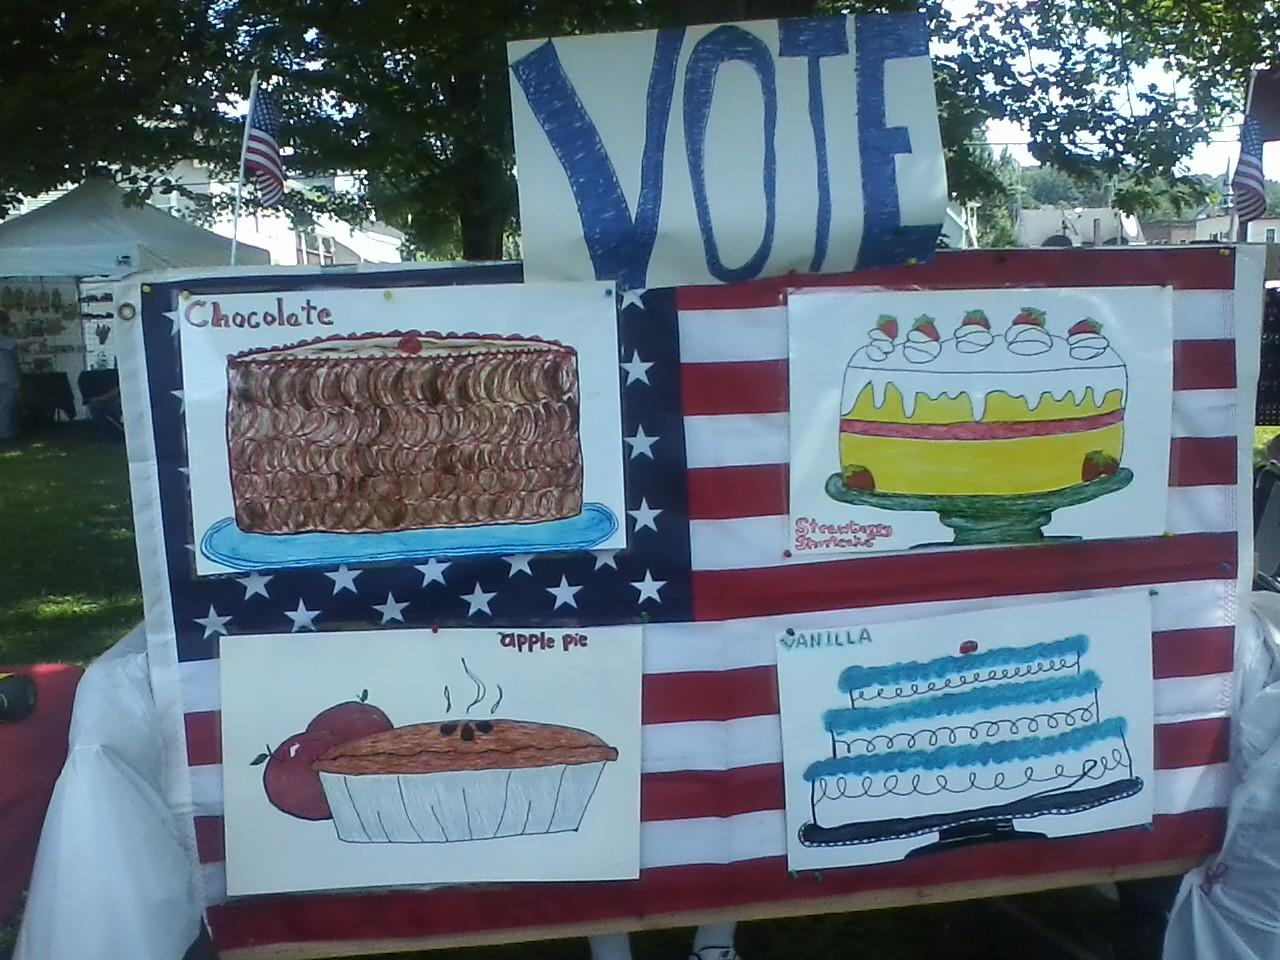 Display of Hand-drawn pictures of four desserts to vote for in mock election